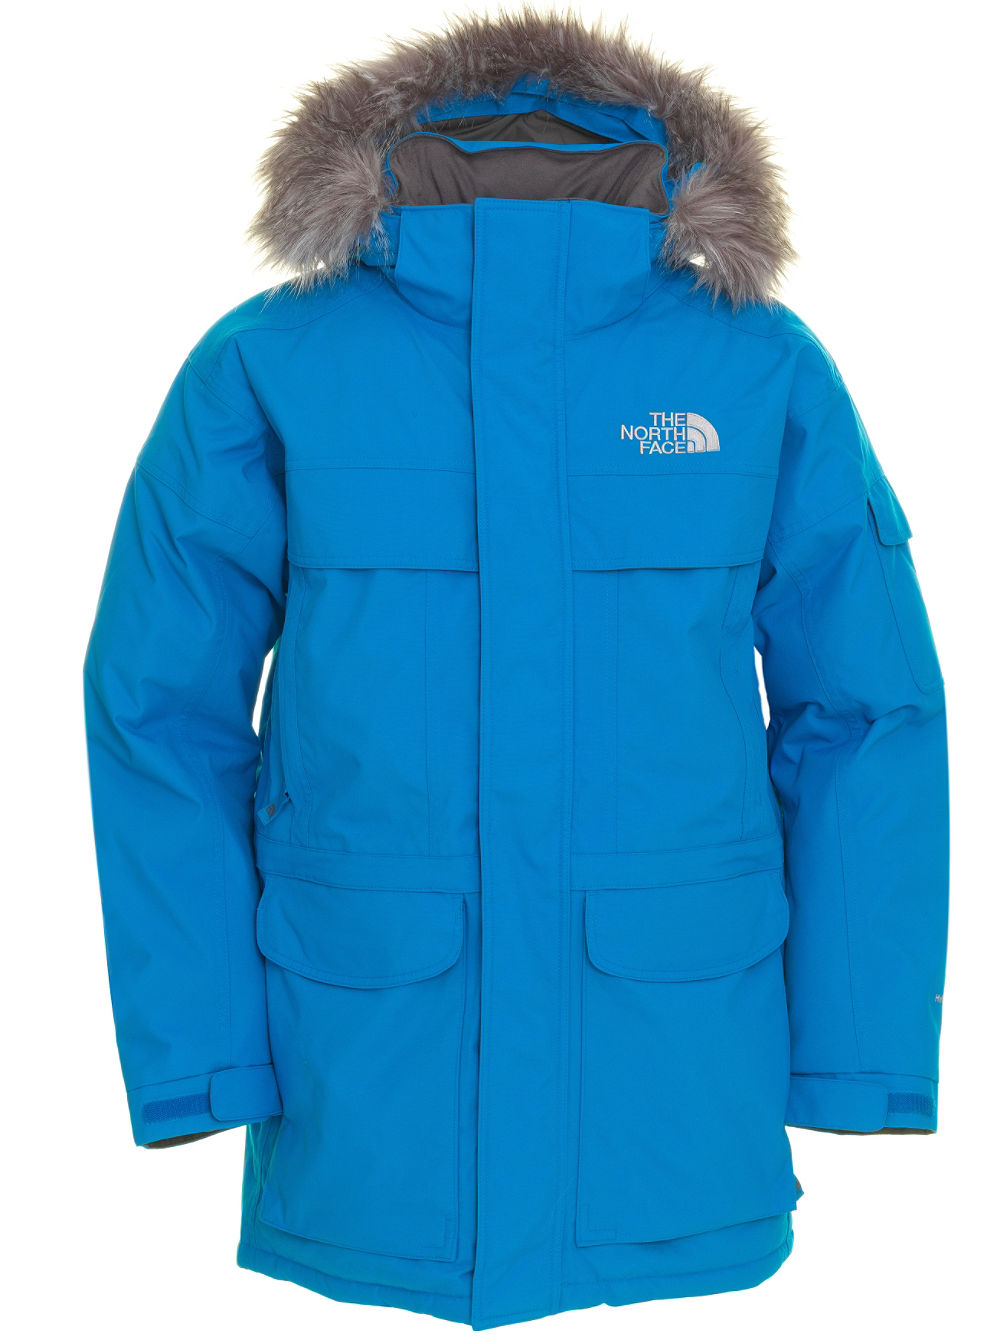 buy the north face mcmurdo parka jacket online at blue. Black Bedroom Furniture Sets. Home Design Ideas